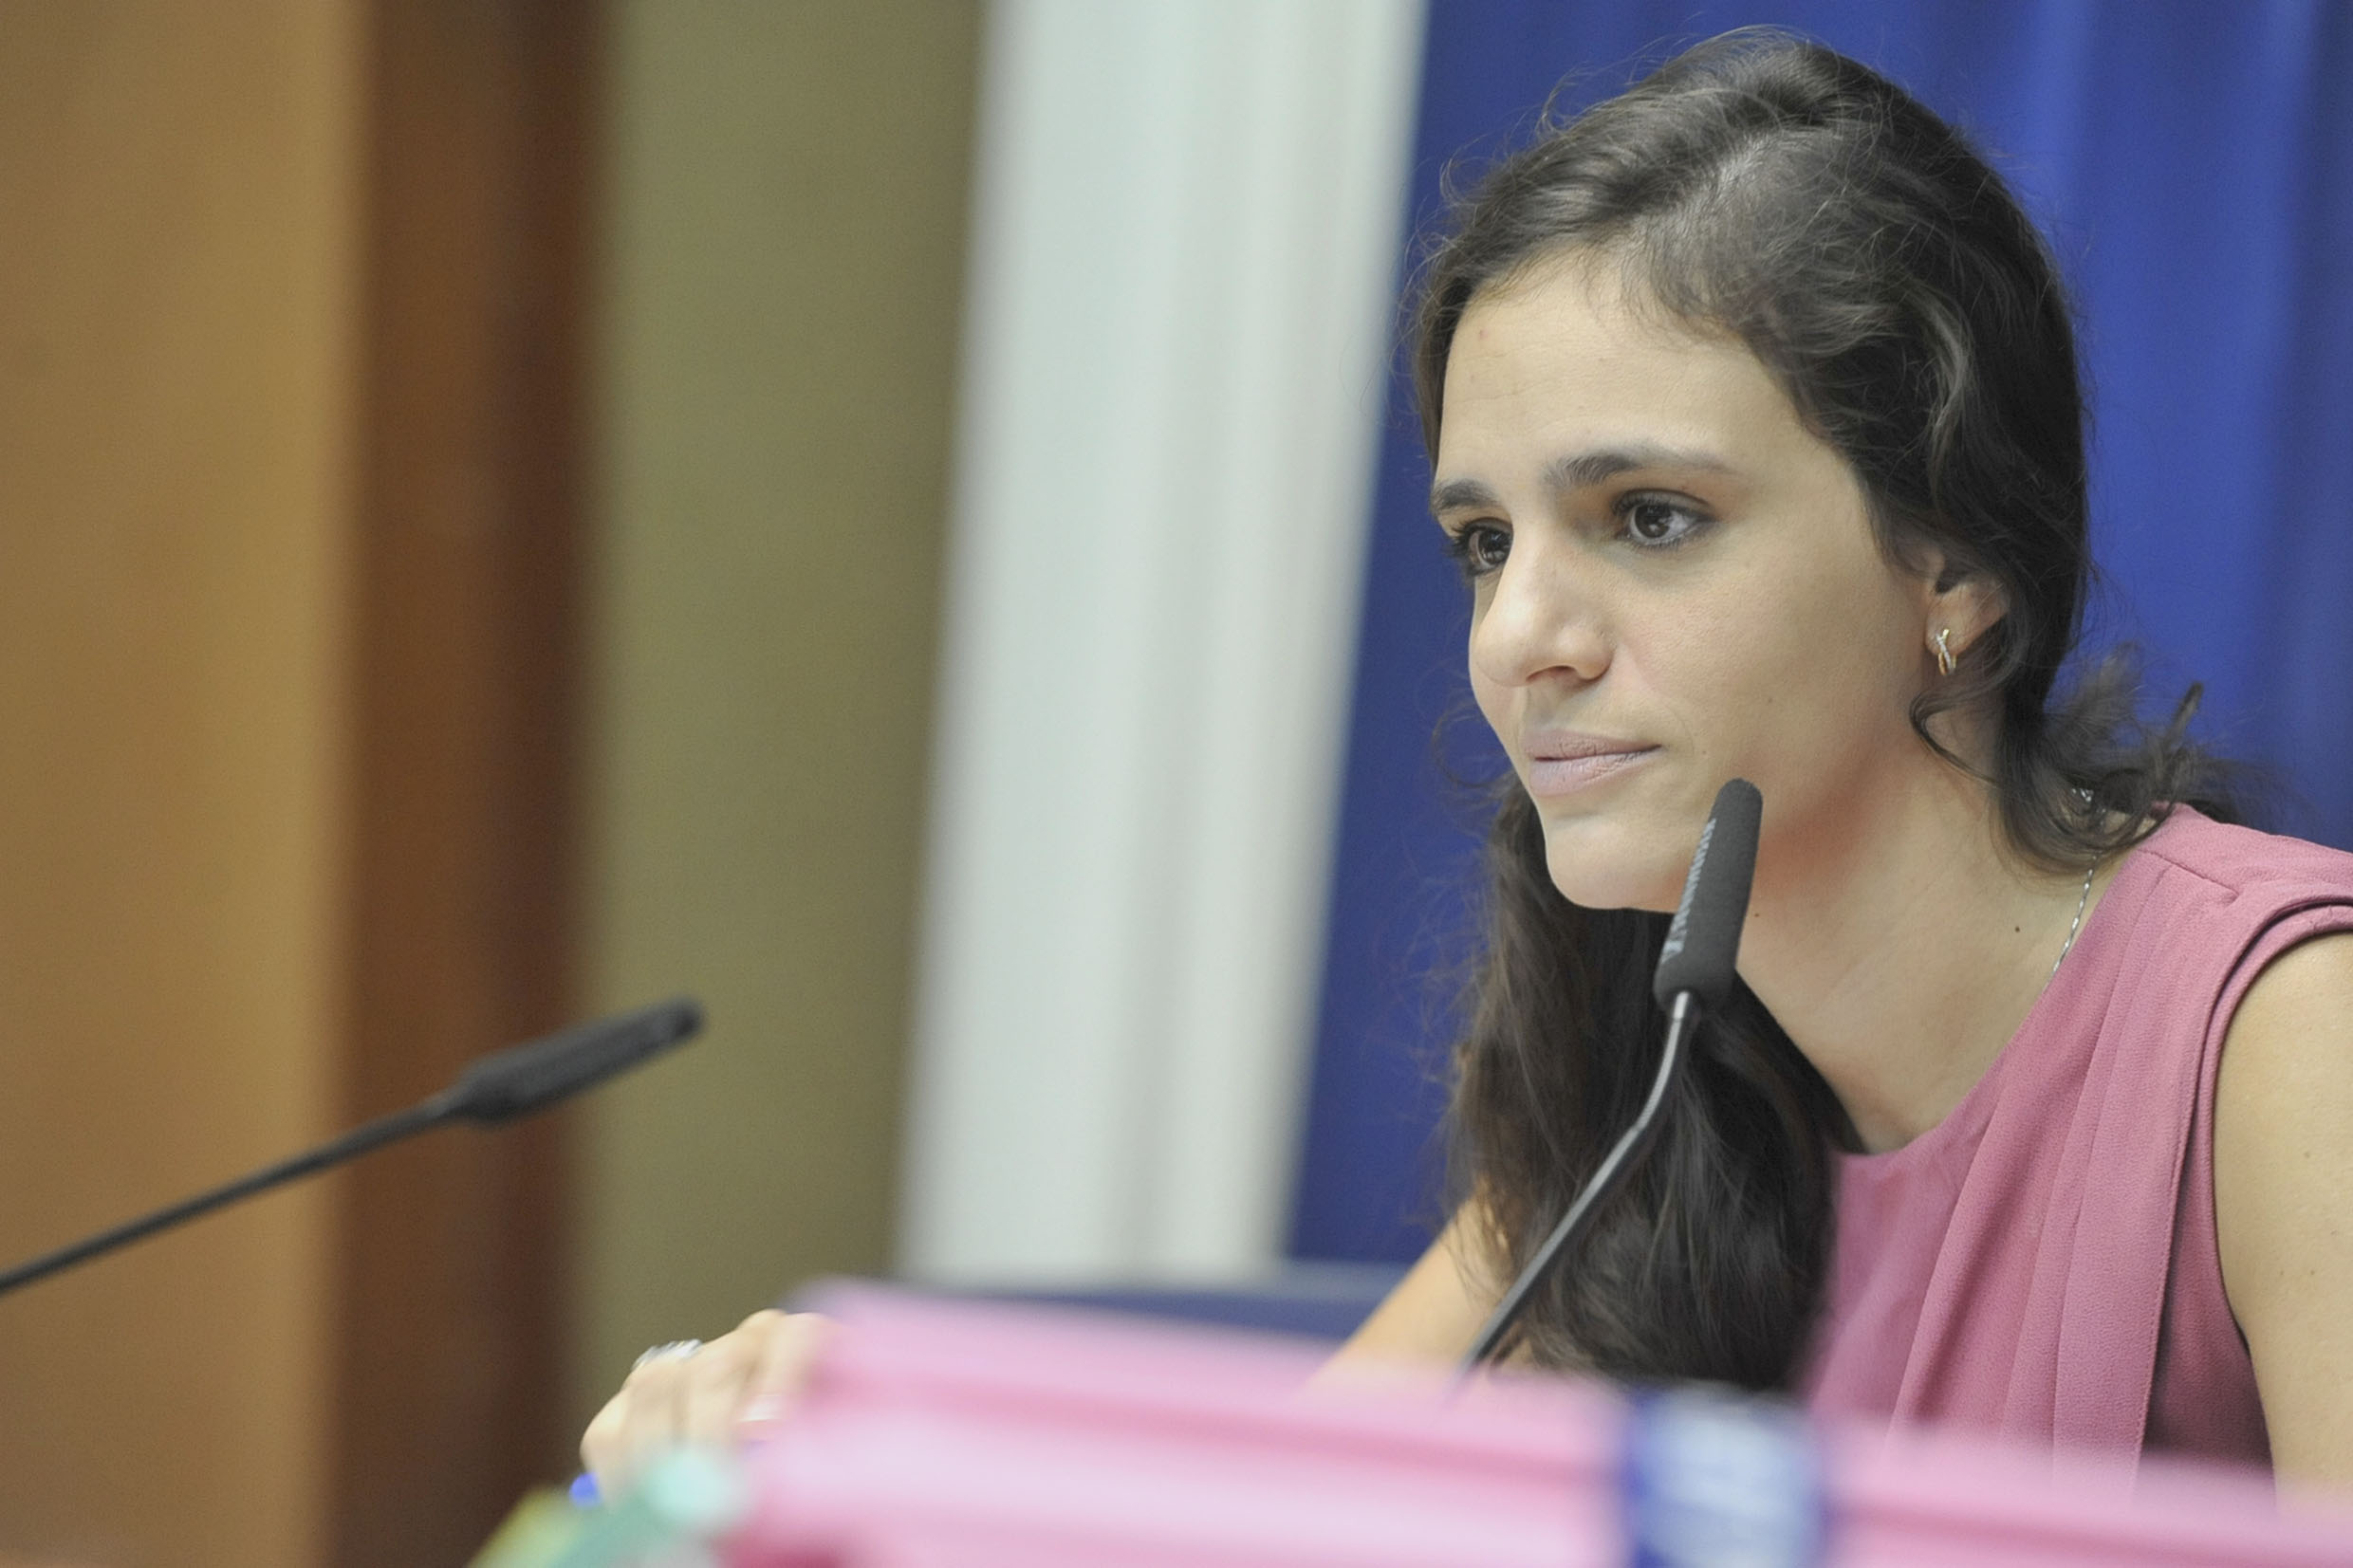 Marina Helou preside a comissão<a style='float:right' href='https://www3.al.sp.gov.br/repositorio/noticia/N-05-2019/fg234185.jpg' target=_blank><img src='/_img/material-file-download-white.png' width='14px' alt='Clique para baixar a imagem'></a>